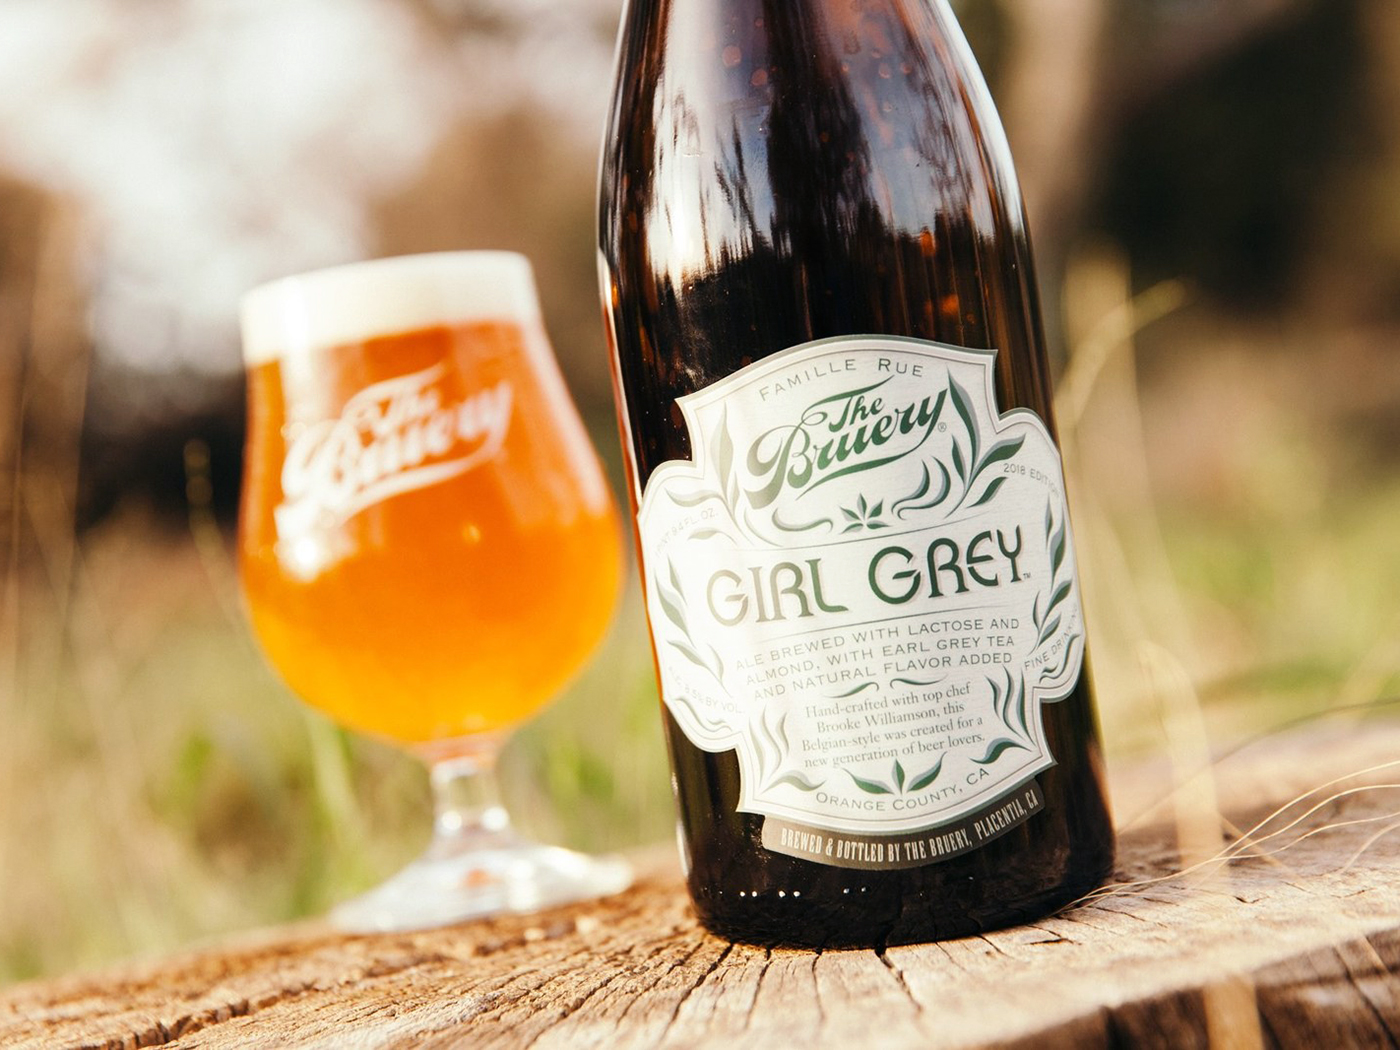 girl grey by the bruery